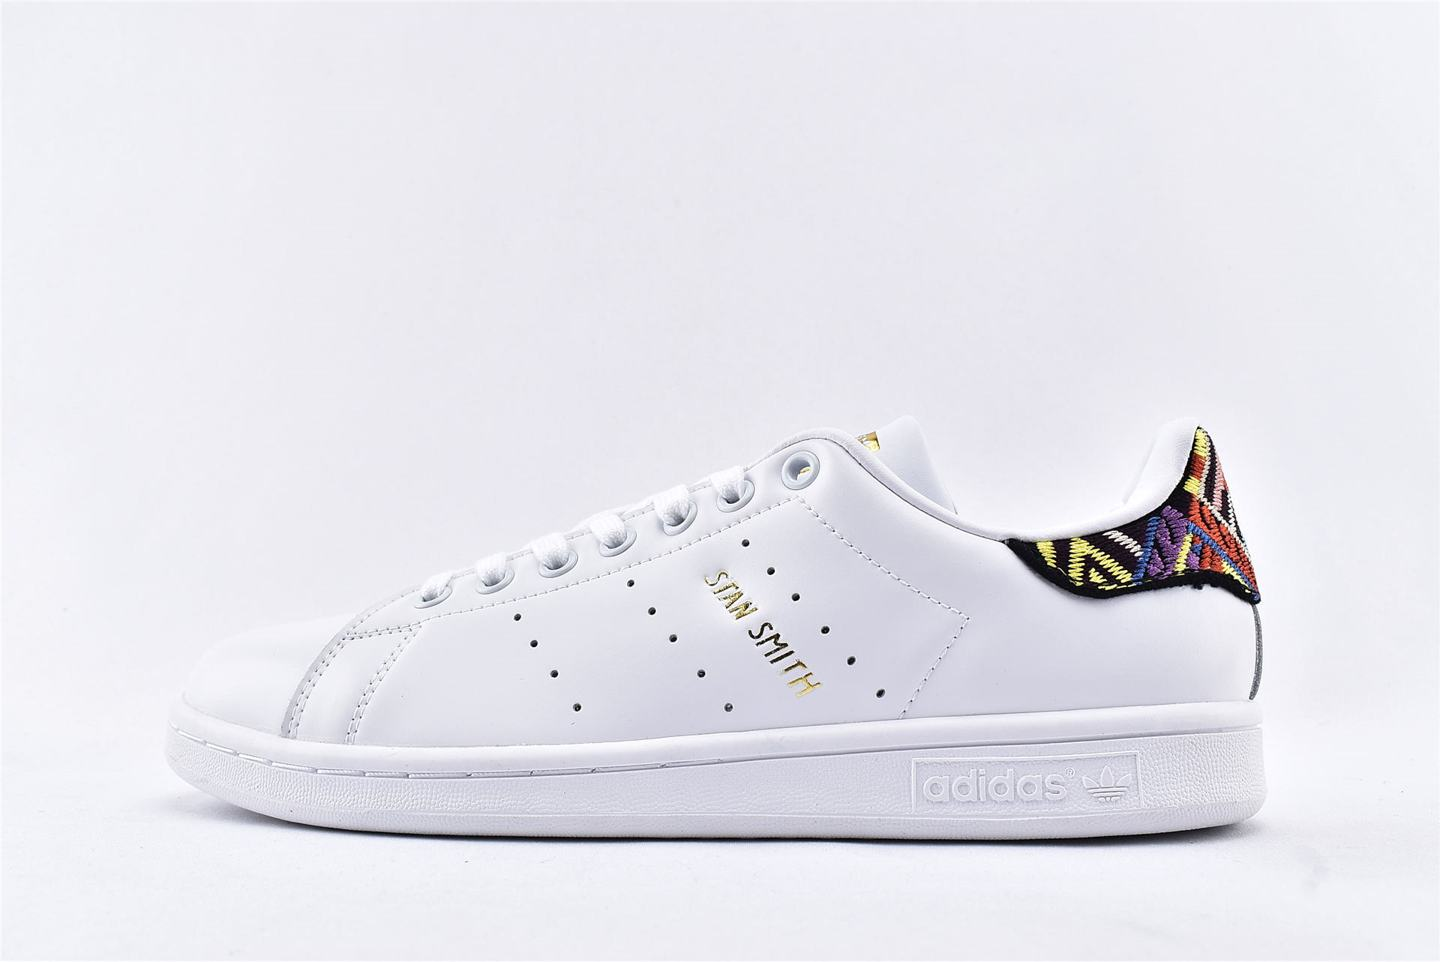 The FARM Company x Wmns Stan Smith Passinho 1